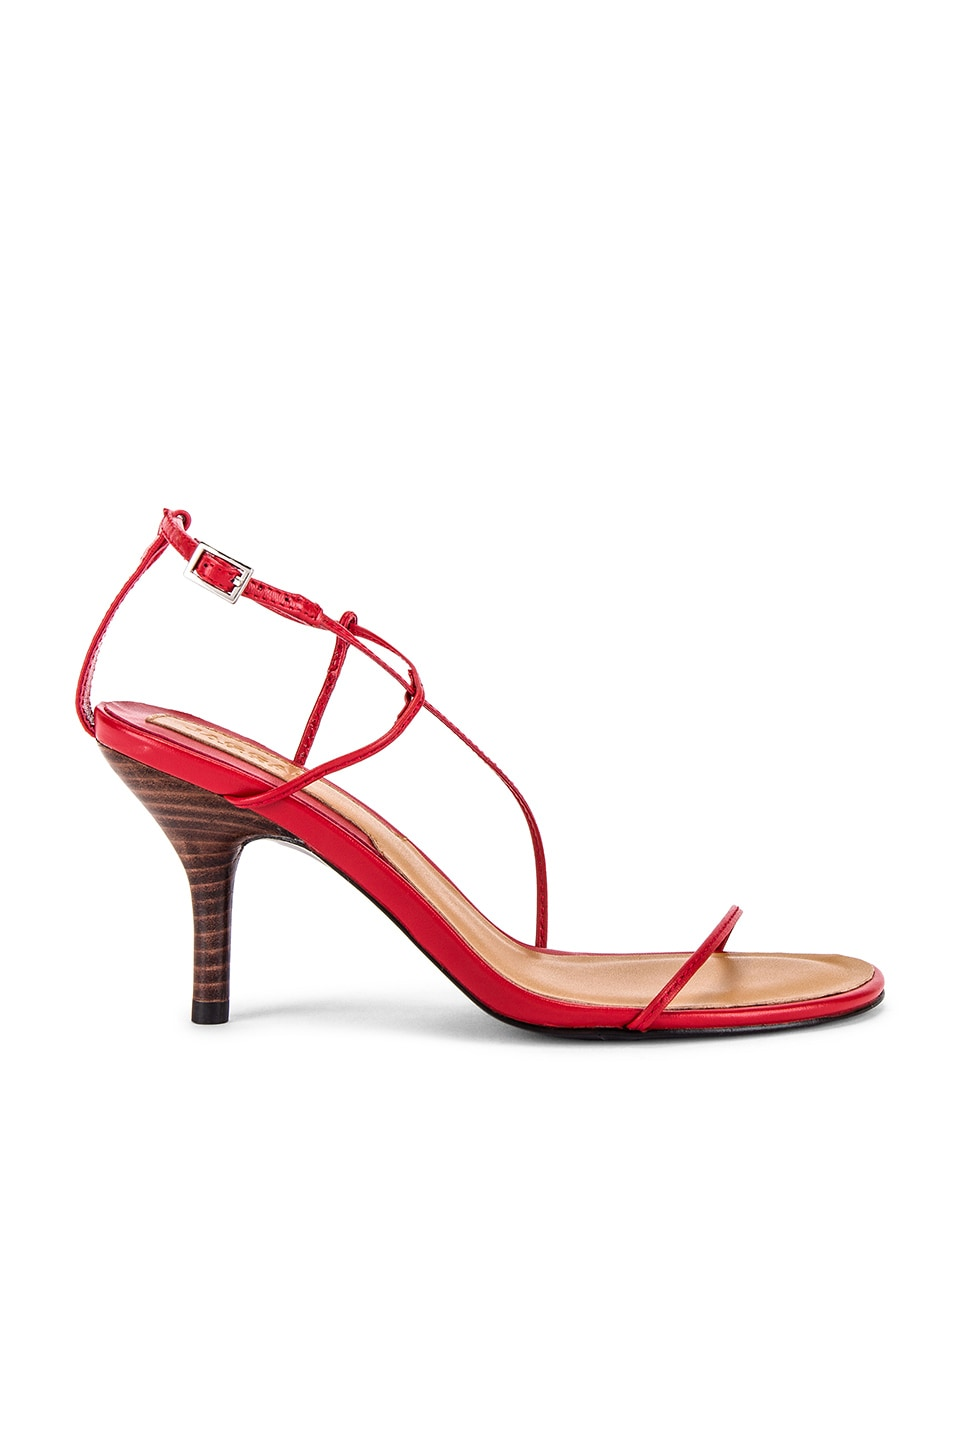 JAGGAR Naked Sandal in Red